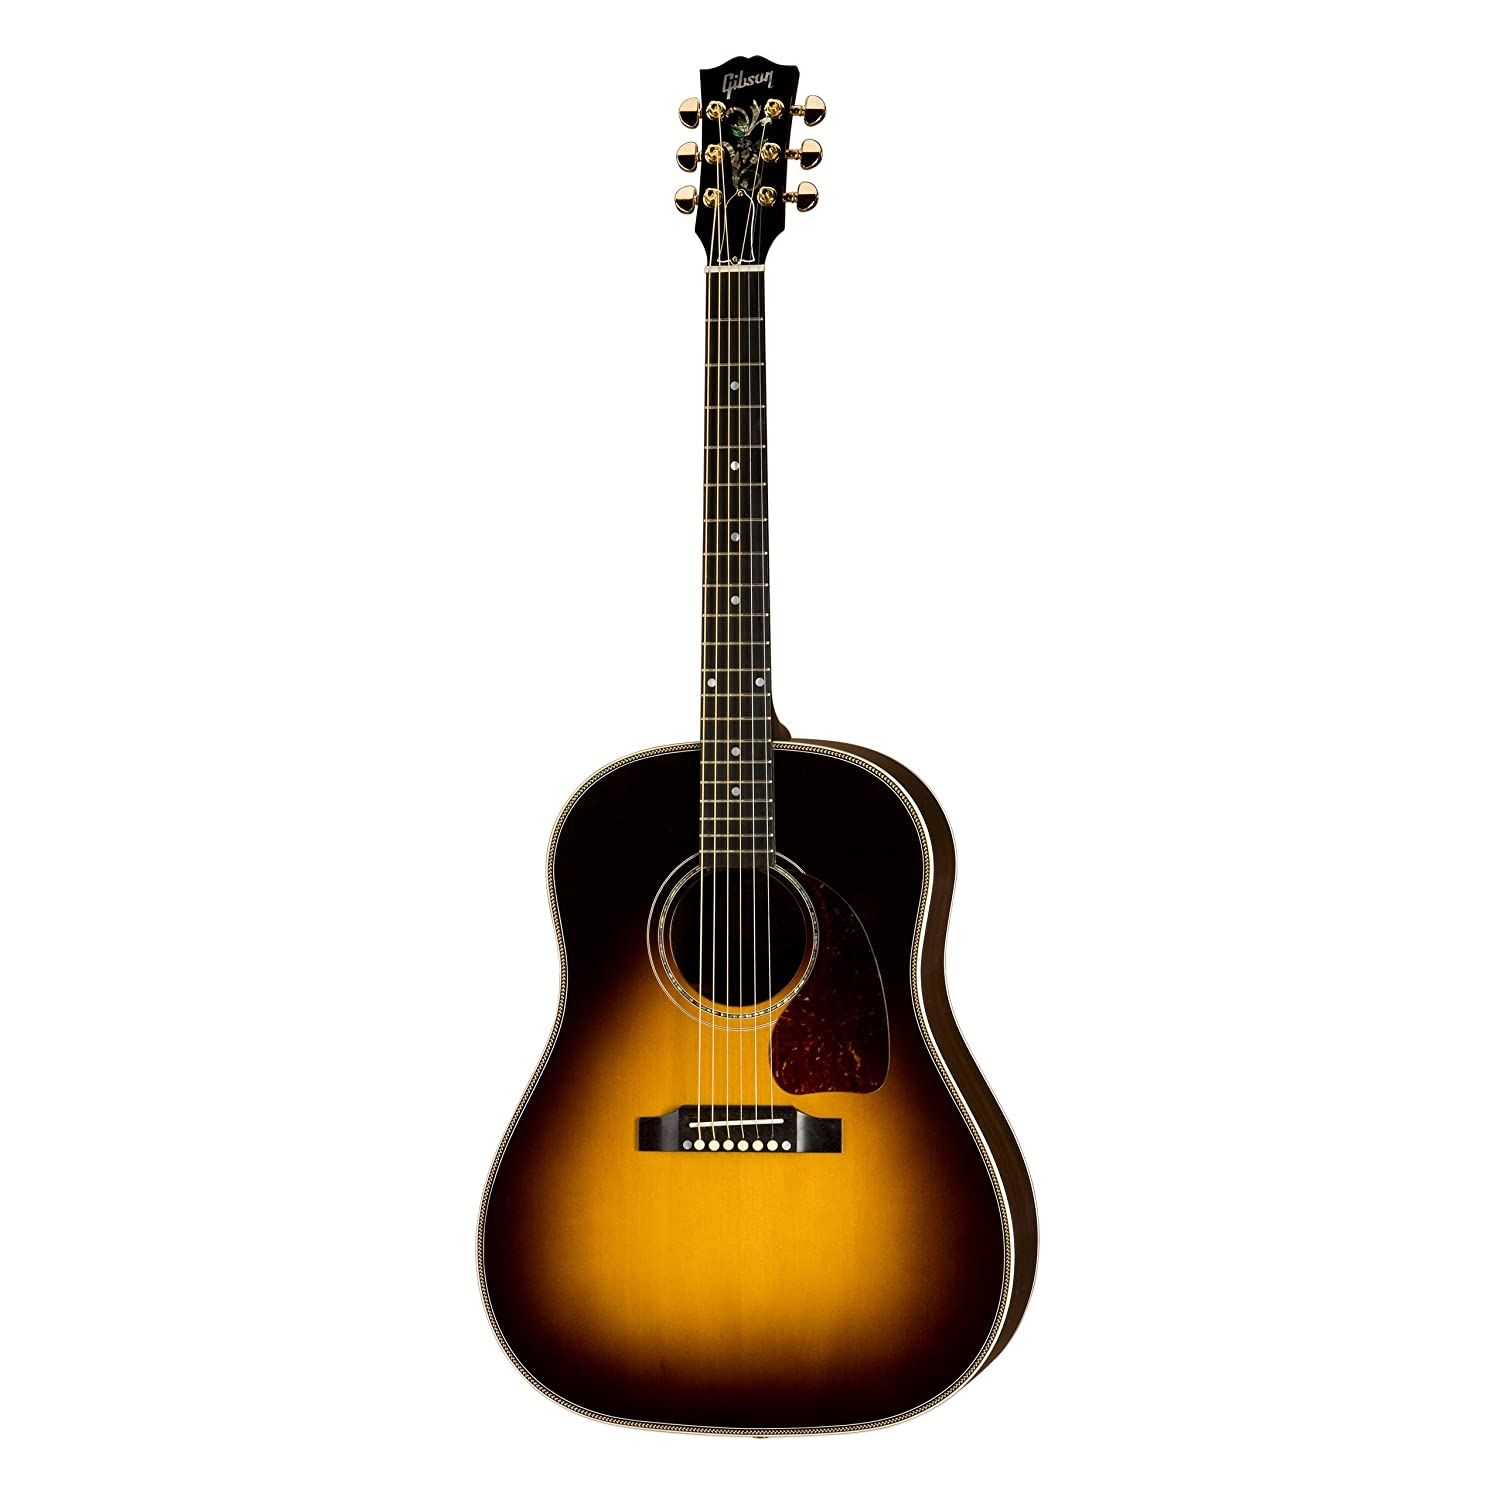 gibson guitars gibson guitar acoustic electric. Black Bedroom Furniture Sets. Home Design Ideas